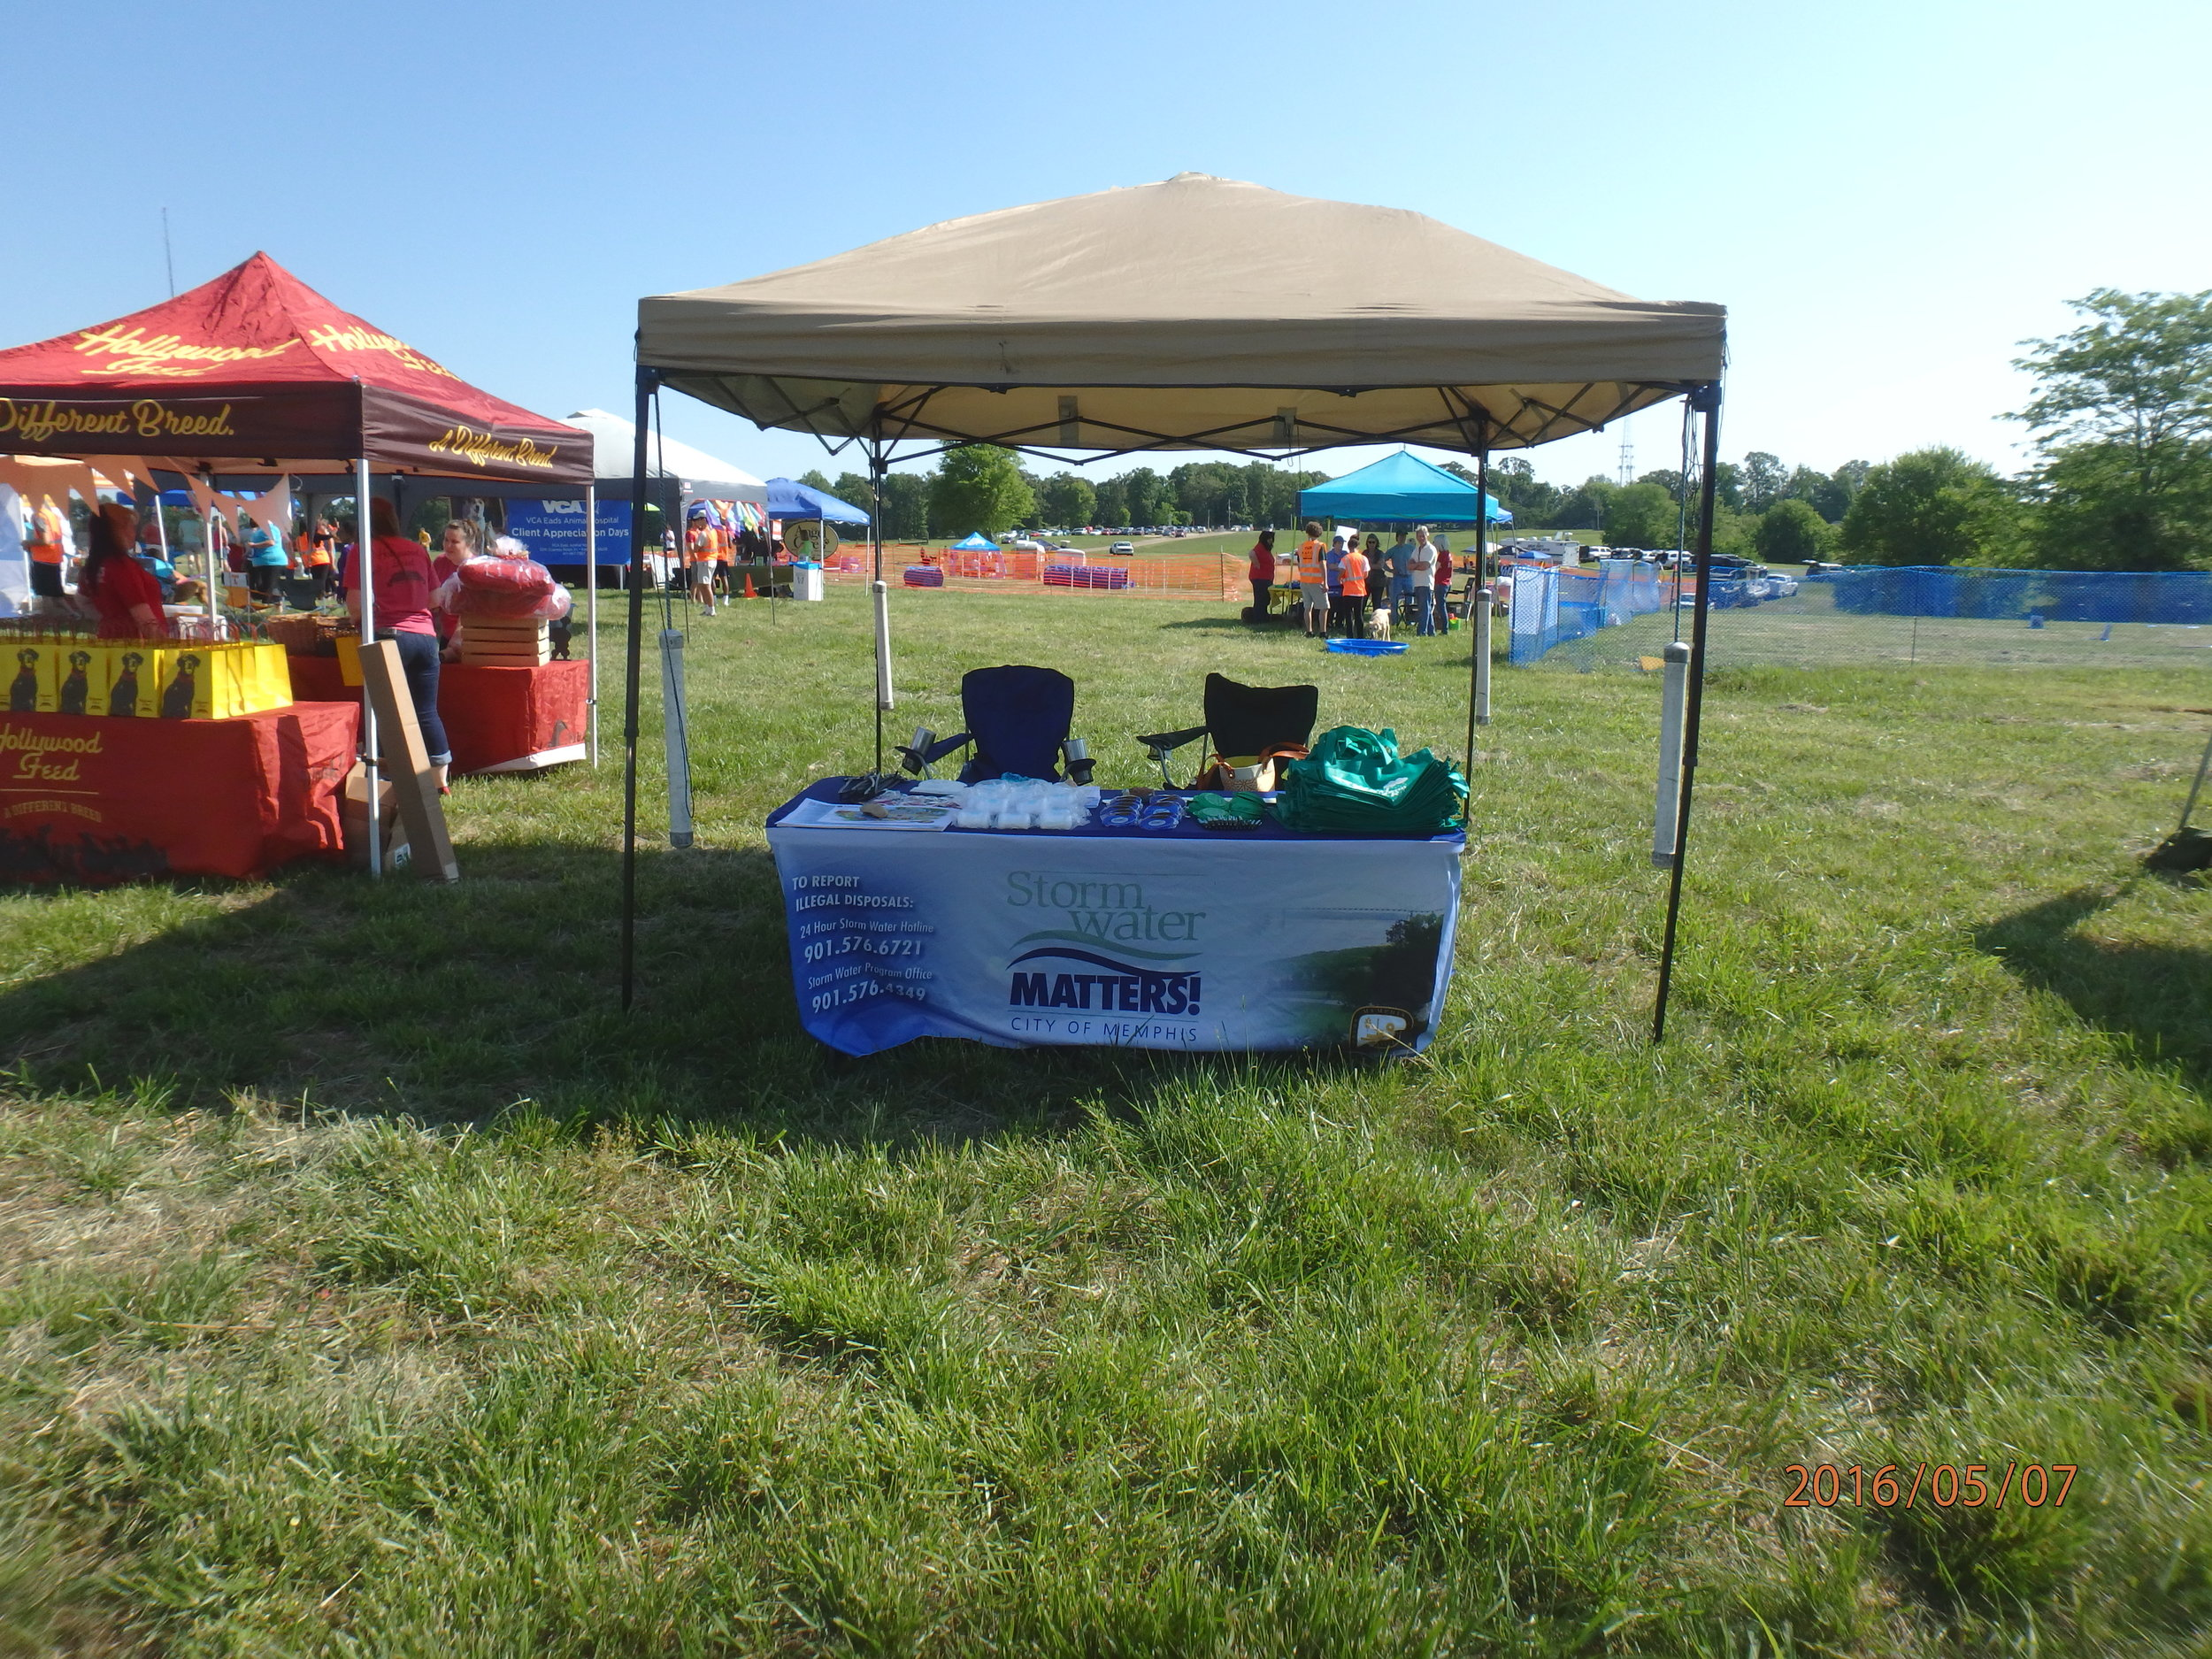 Our 2016 Dog-A-Roo booth. We provide many useful items to promote proper pick-up and disposal of pet waste, such as pet waste pick-up bag dispensers and Scoop-the-Poop yard signs. The bacteria in pet waste is a storm water contaminant.